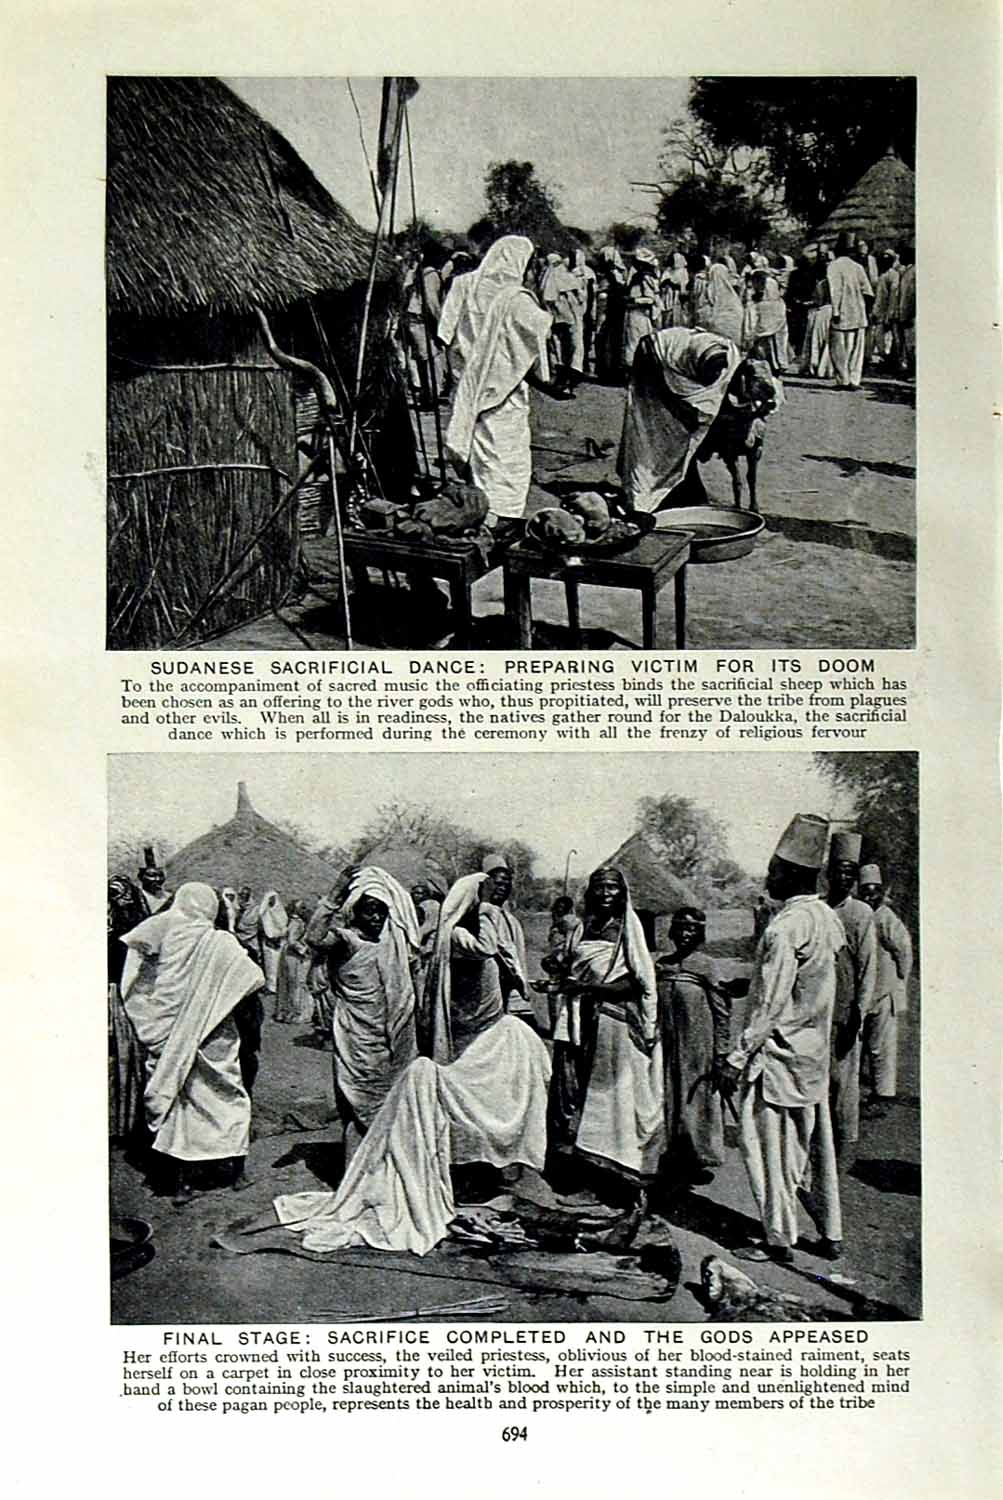 Print C1920 Sudanese Sacrificial Dance Sheep Daloukka Africa 694F151 Old Original